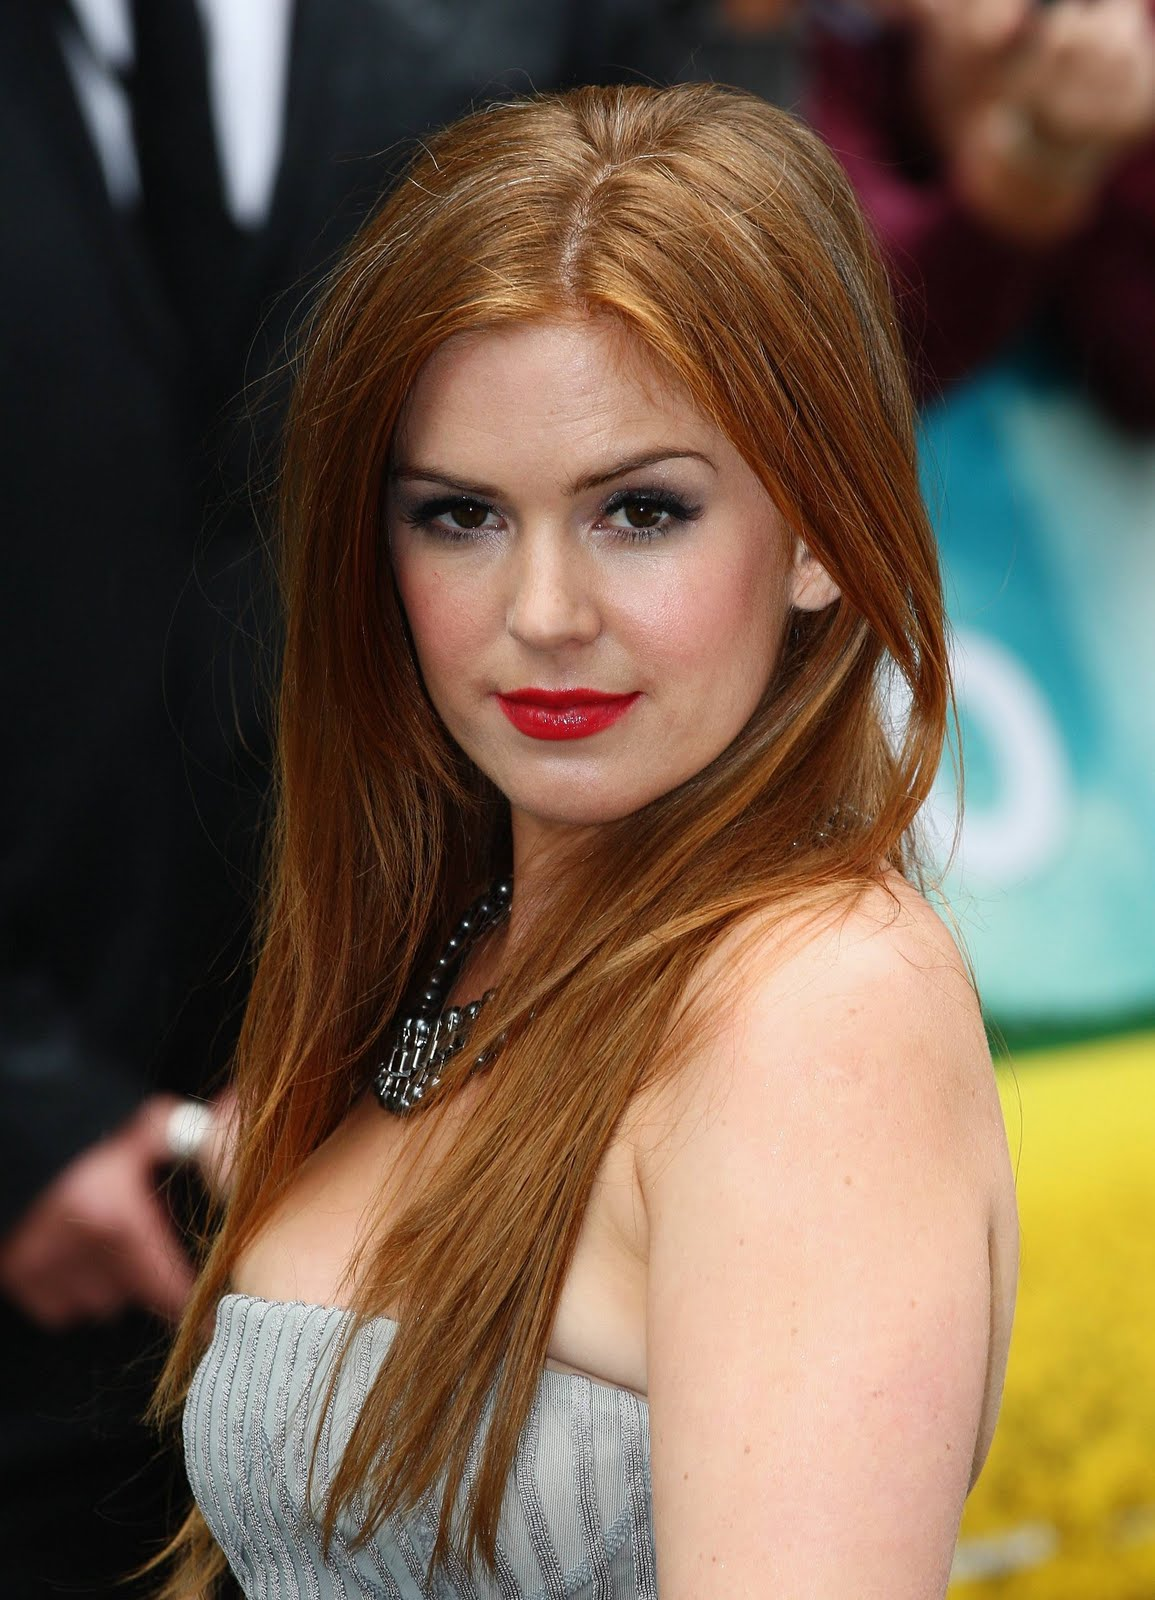 Hairstyles Popular 2012 Celebrity Straight Long Hairstyle Wallpaper